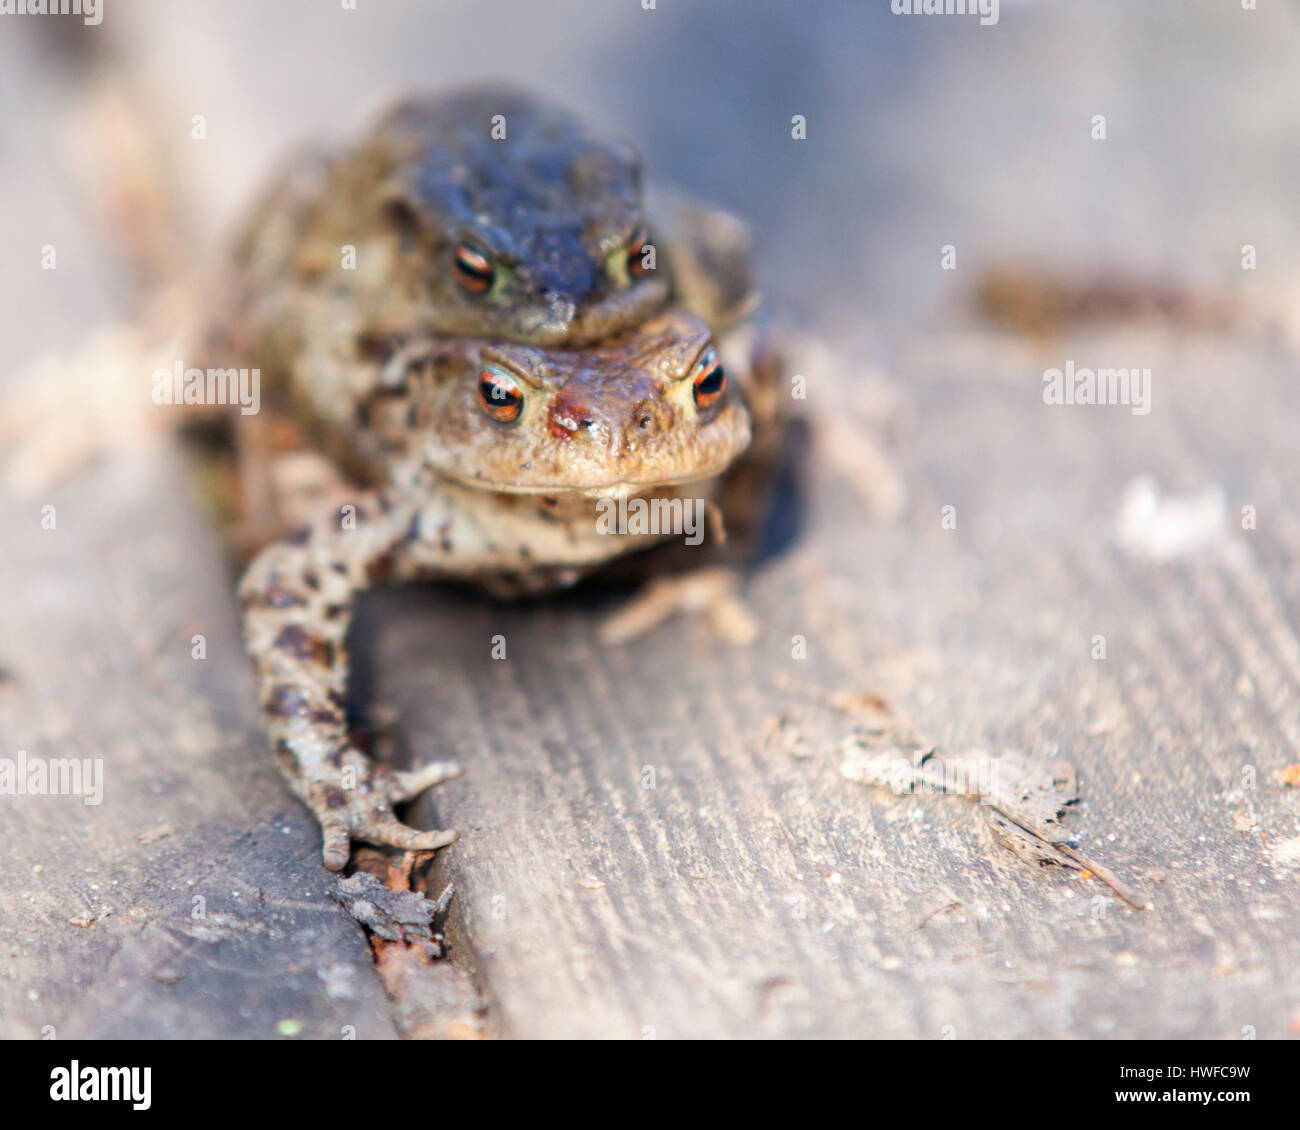 Pair of common European toads (Bufo bufo) mating  Model Release: No.  Property Release: No. - Stock Image